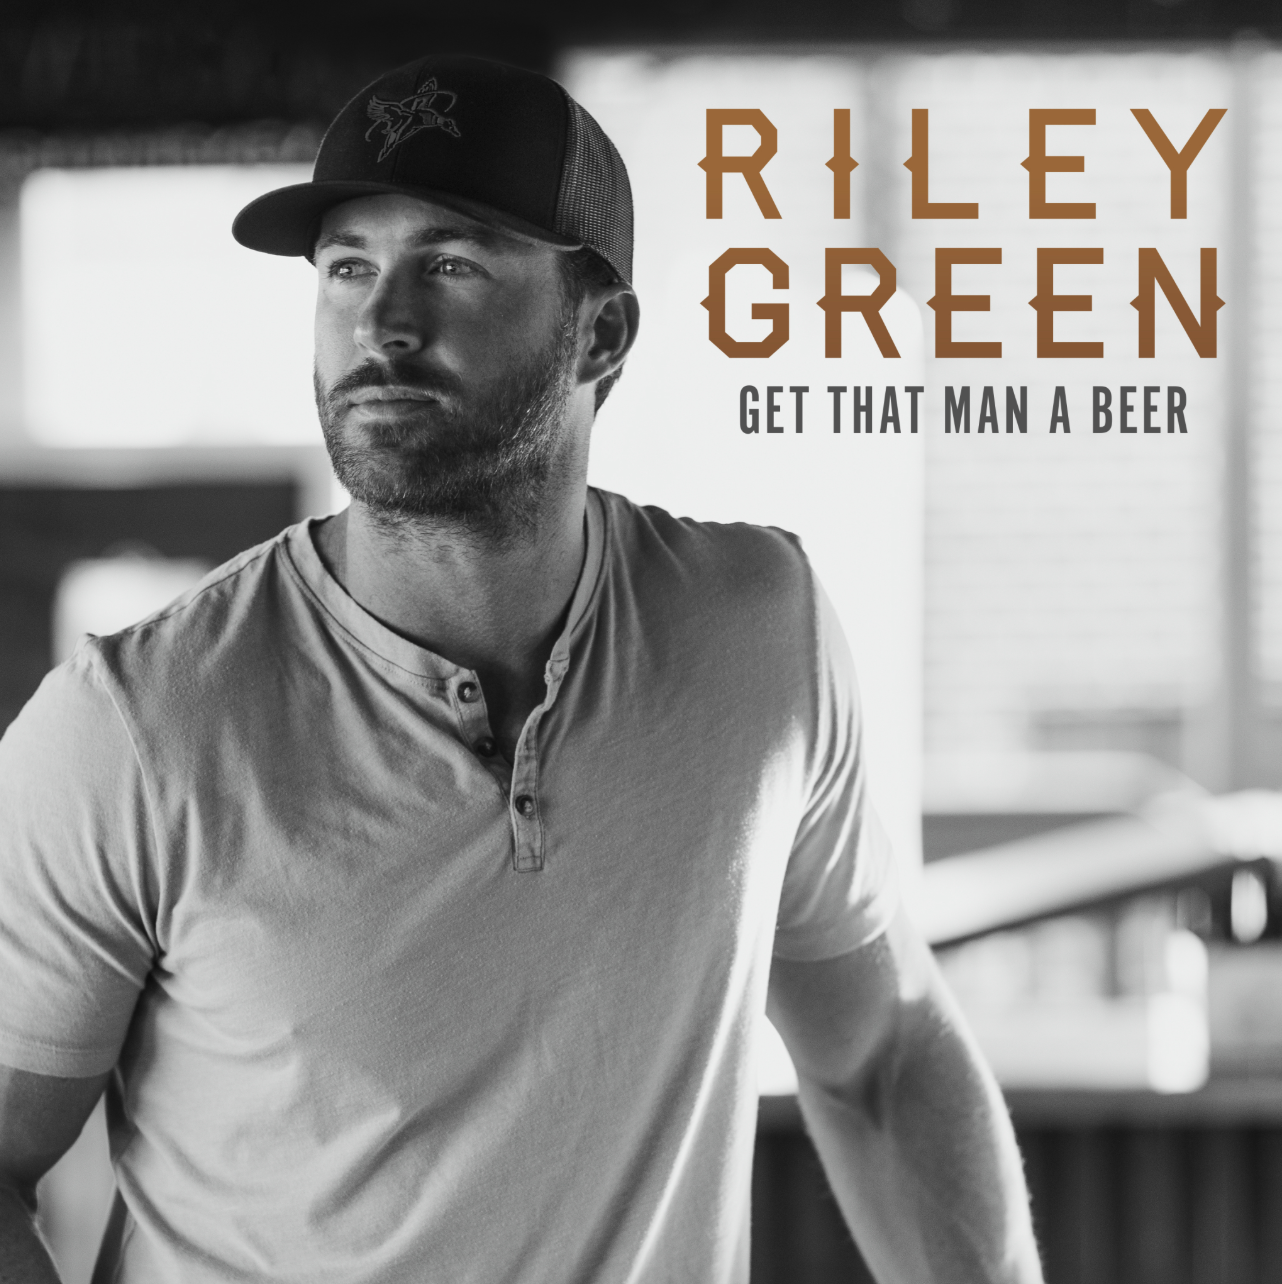 riley-green-get-that-man